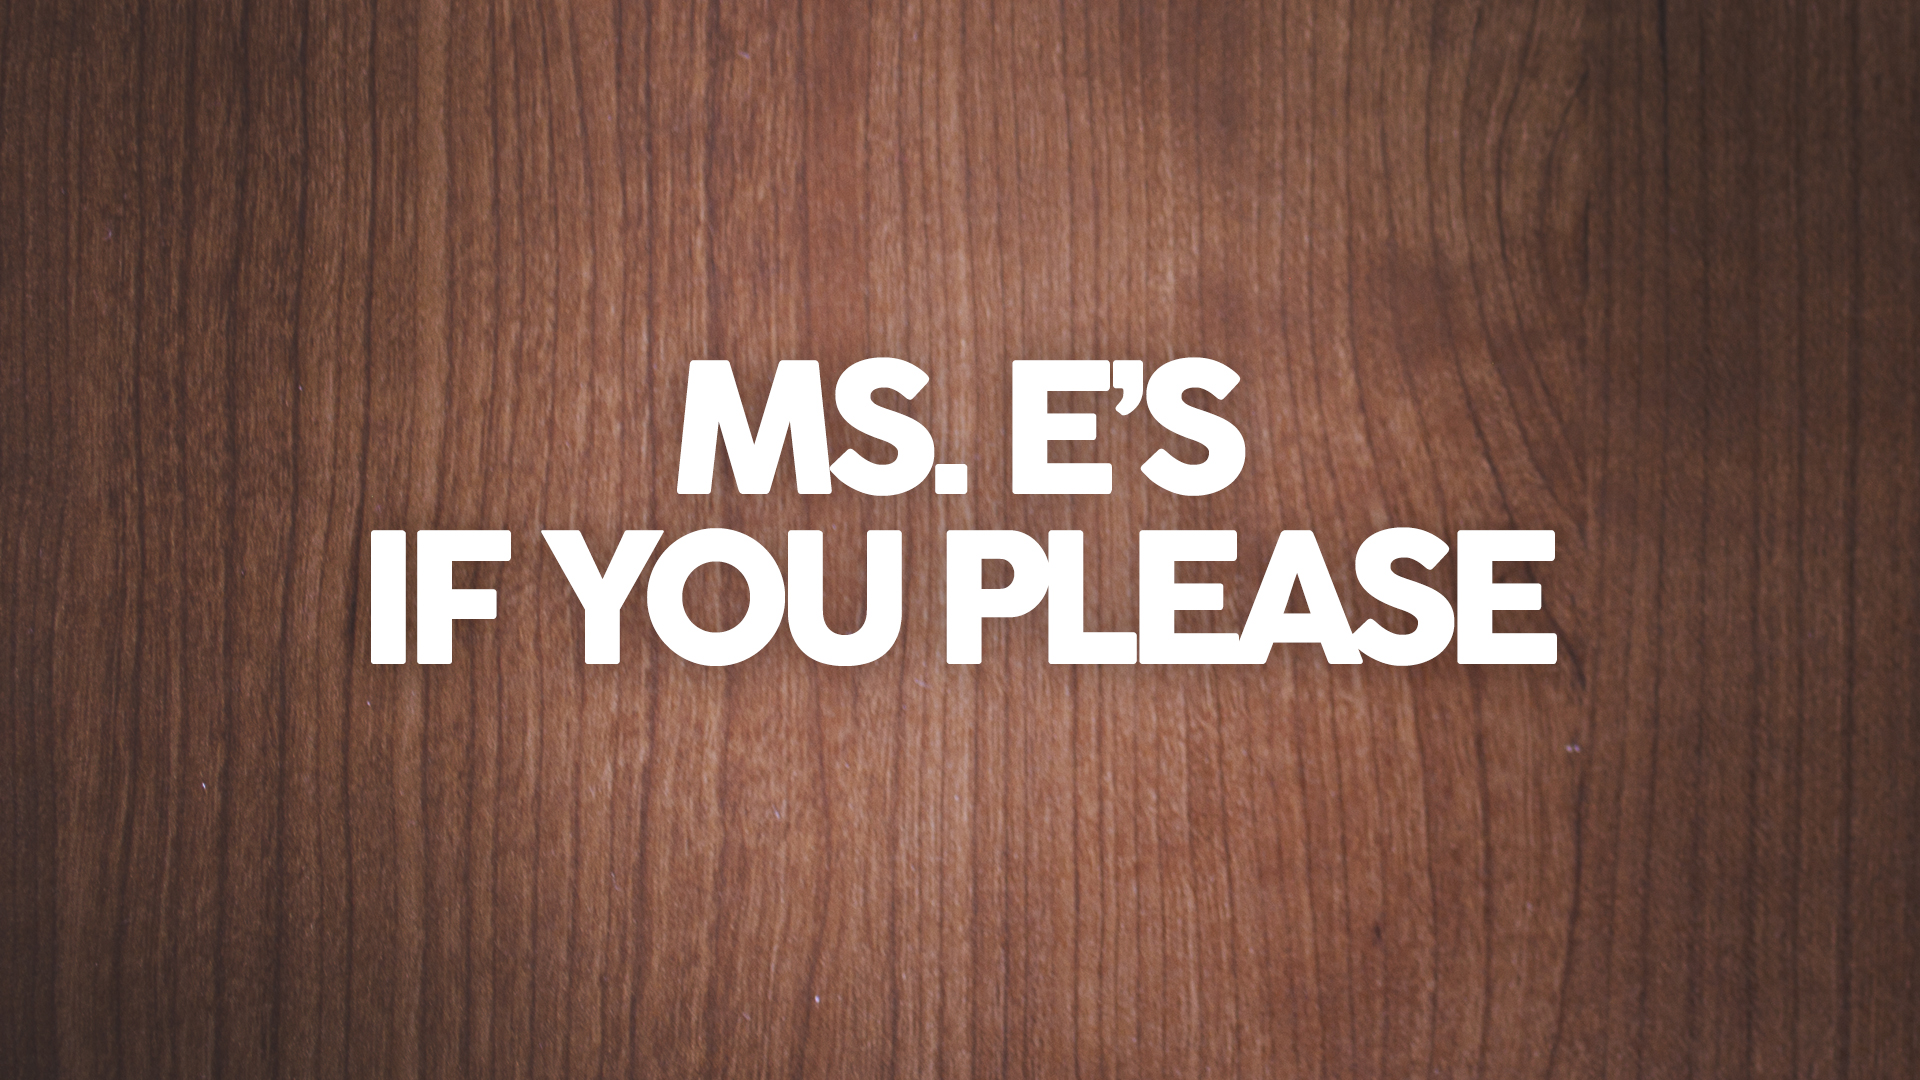 Ms. E's, If You Please!